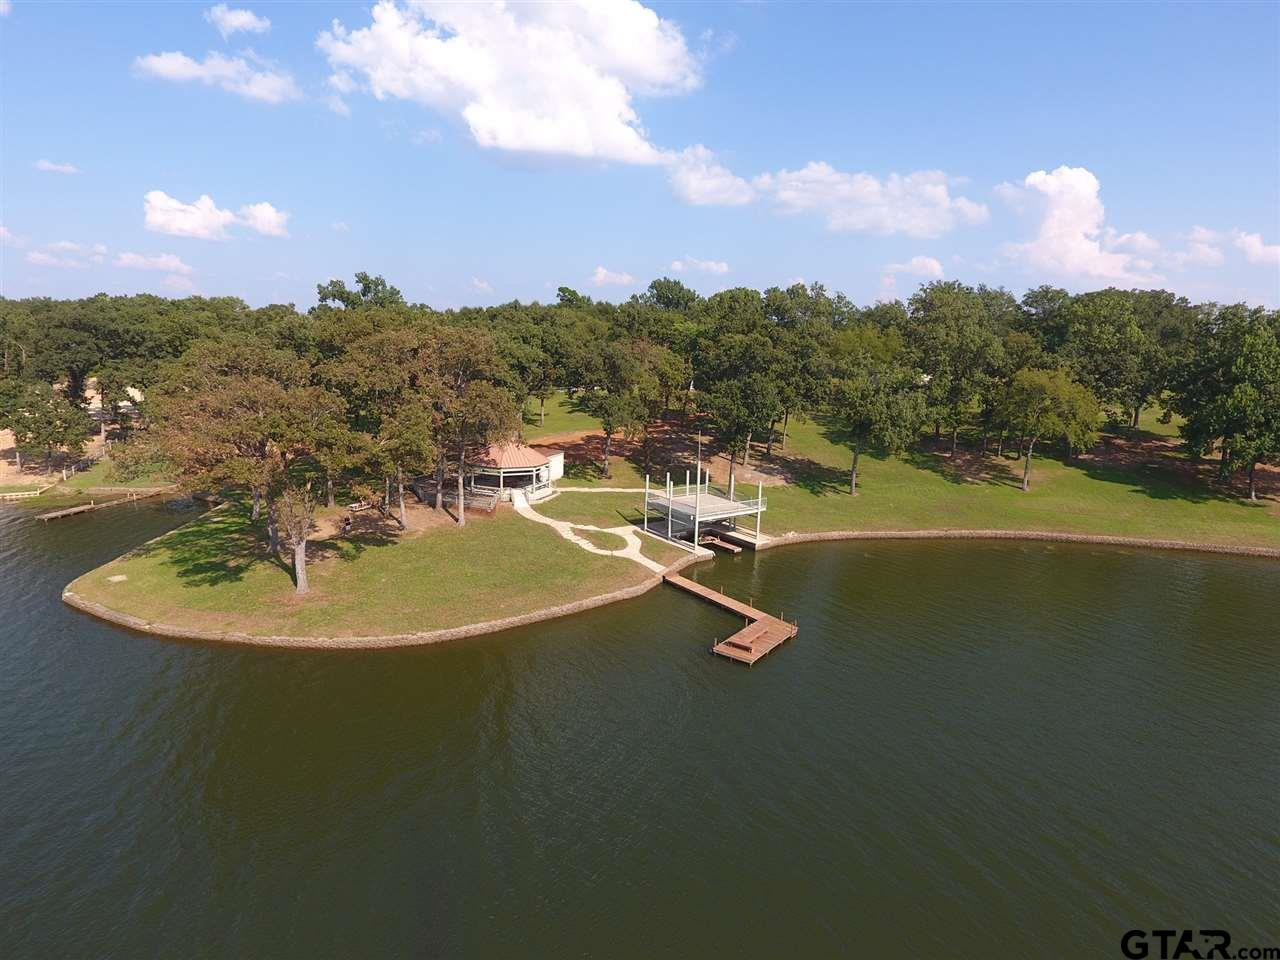 7+ acres of breathtaking waterfront property on the beautiful Lake Bob Sandlin. Property includes a 3bedroom 2bathroom home with plenty of room to build others. Large boathouse with a panoramic view from the upper deck, a gazebo with restrooms, this place is perfect for a large group of people ready to enjoy all of the adventure Lake Bob Sandlin has to offer! Call today for a tour of this property!